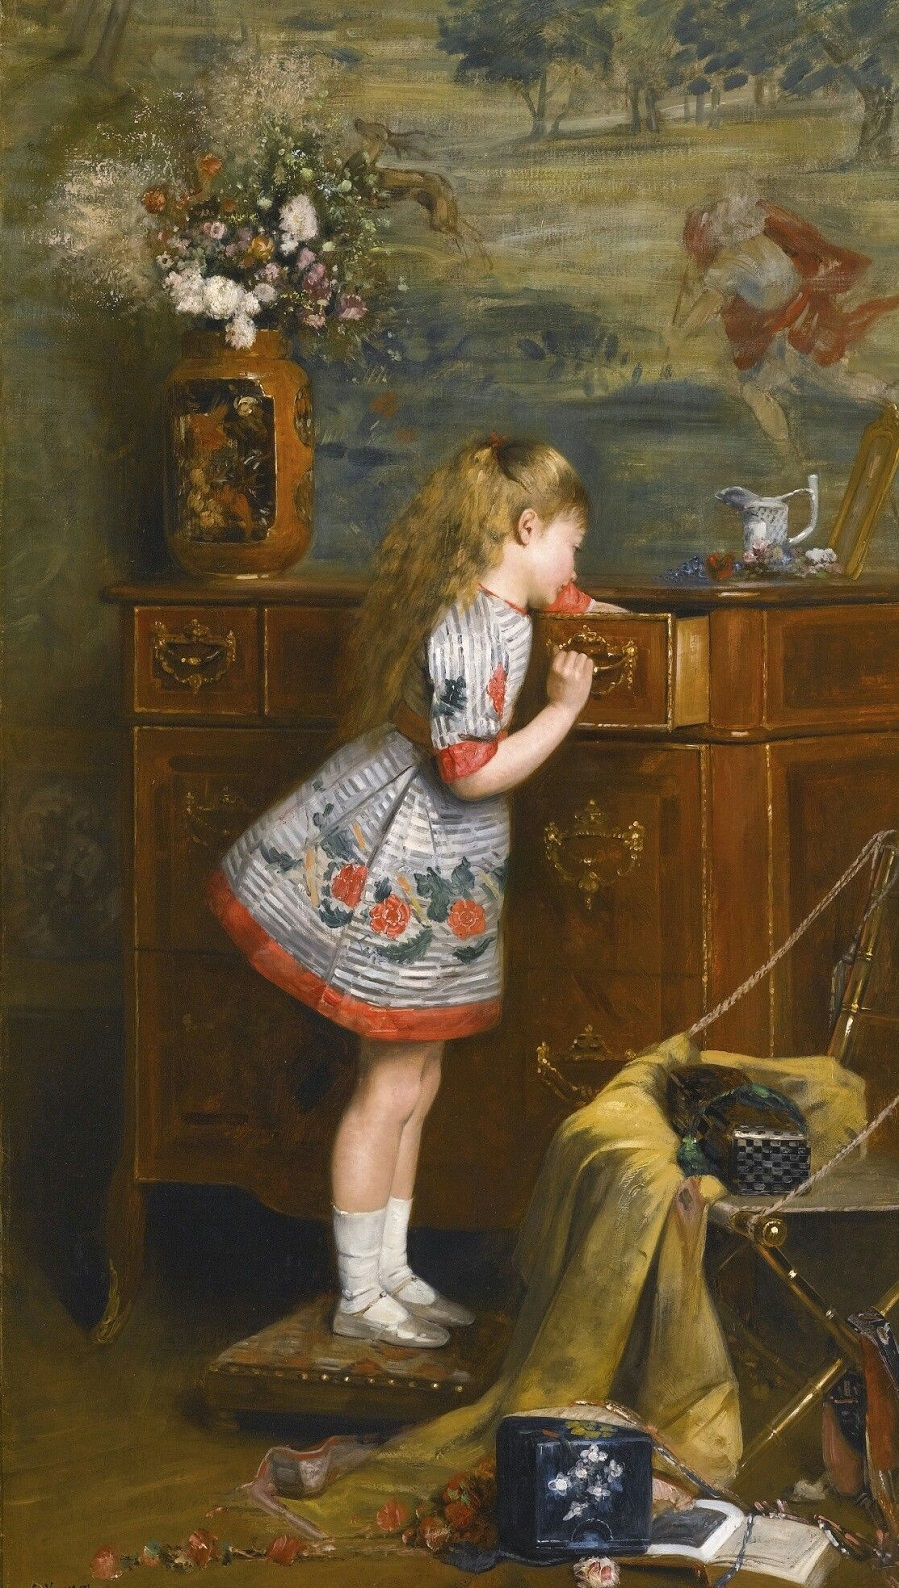 A narrative study showing a young girl climbing on a stool to look into a drawer